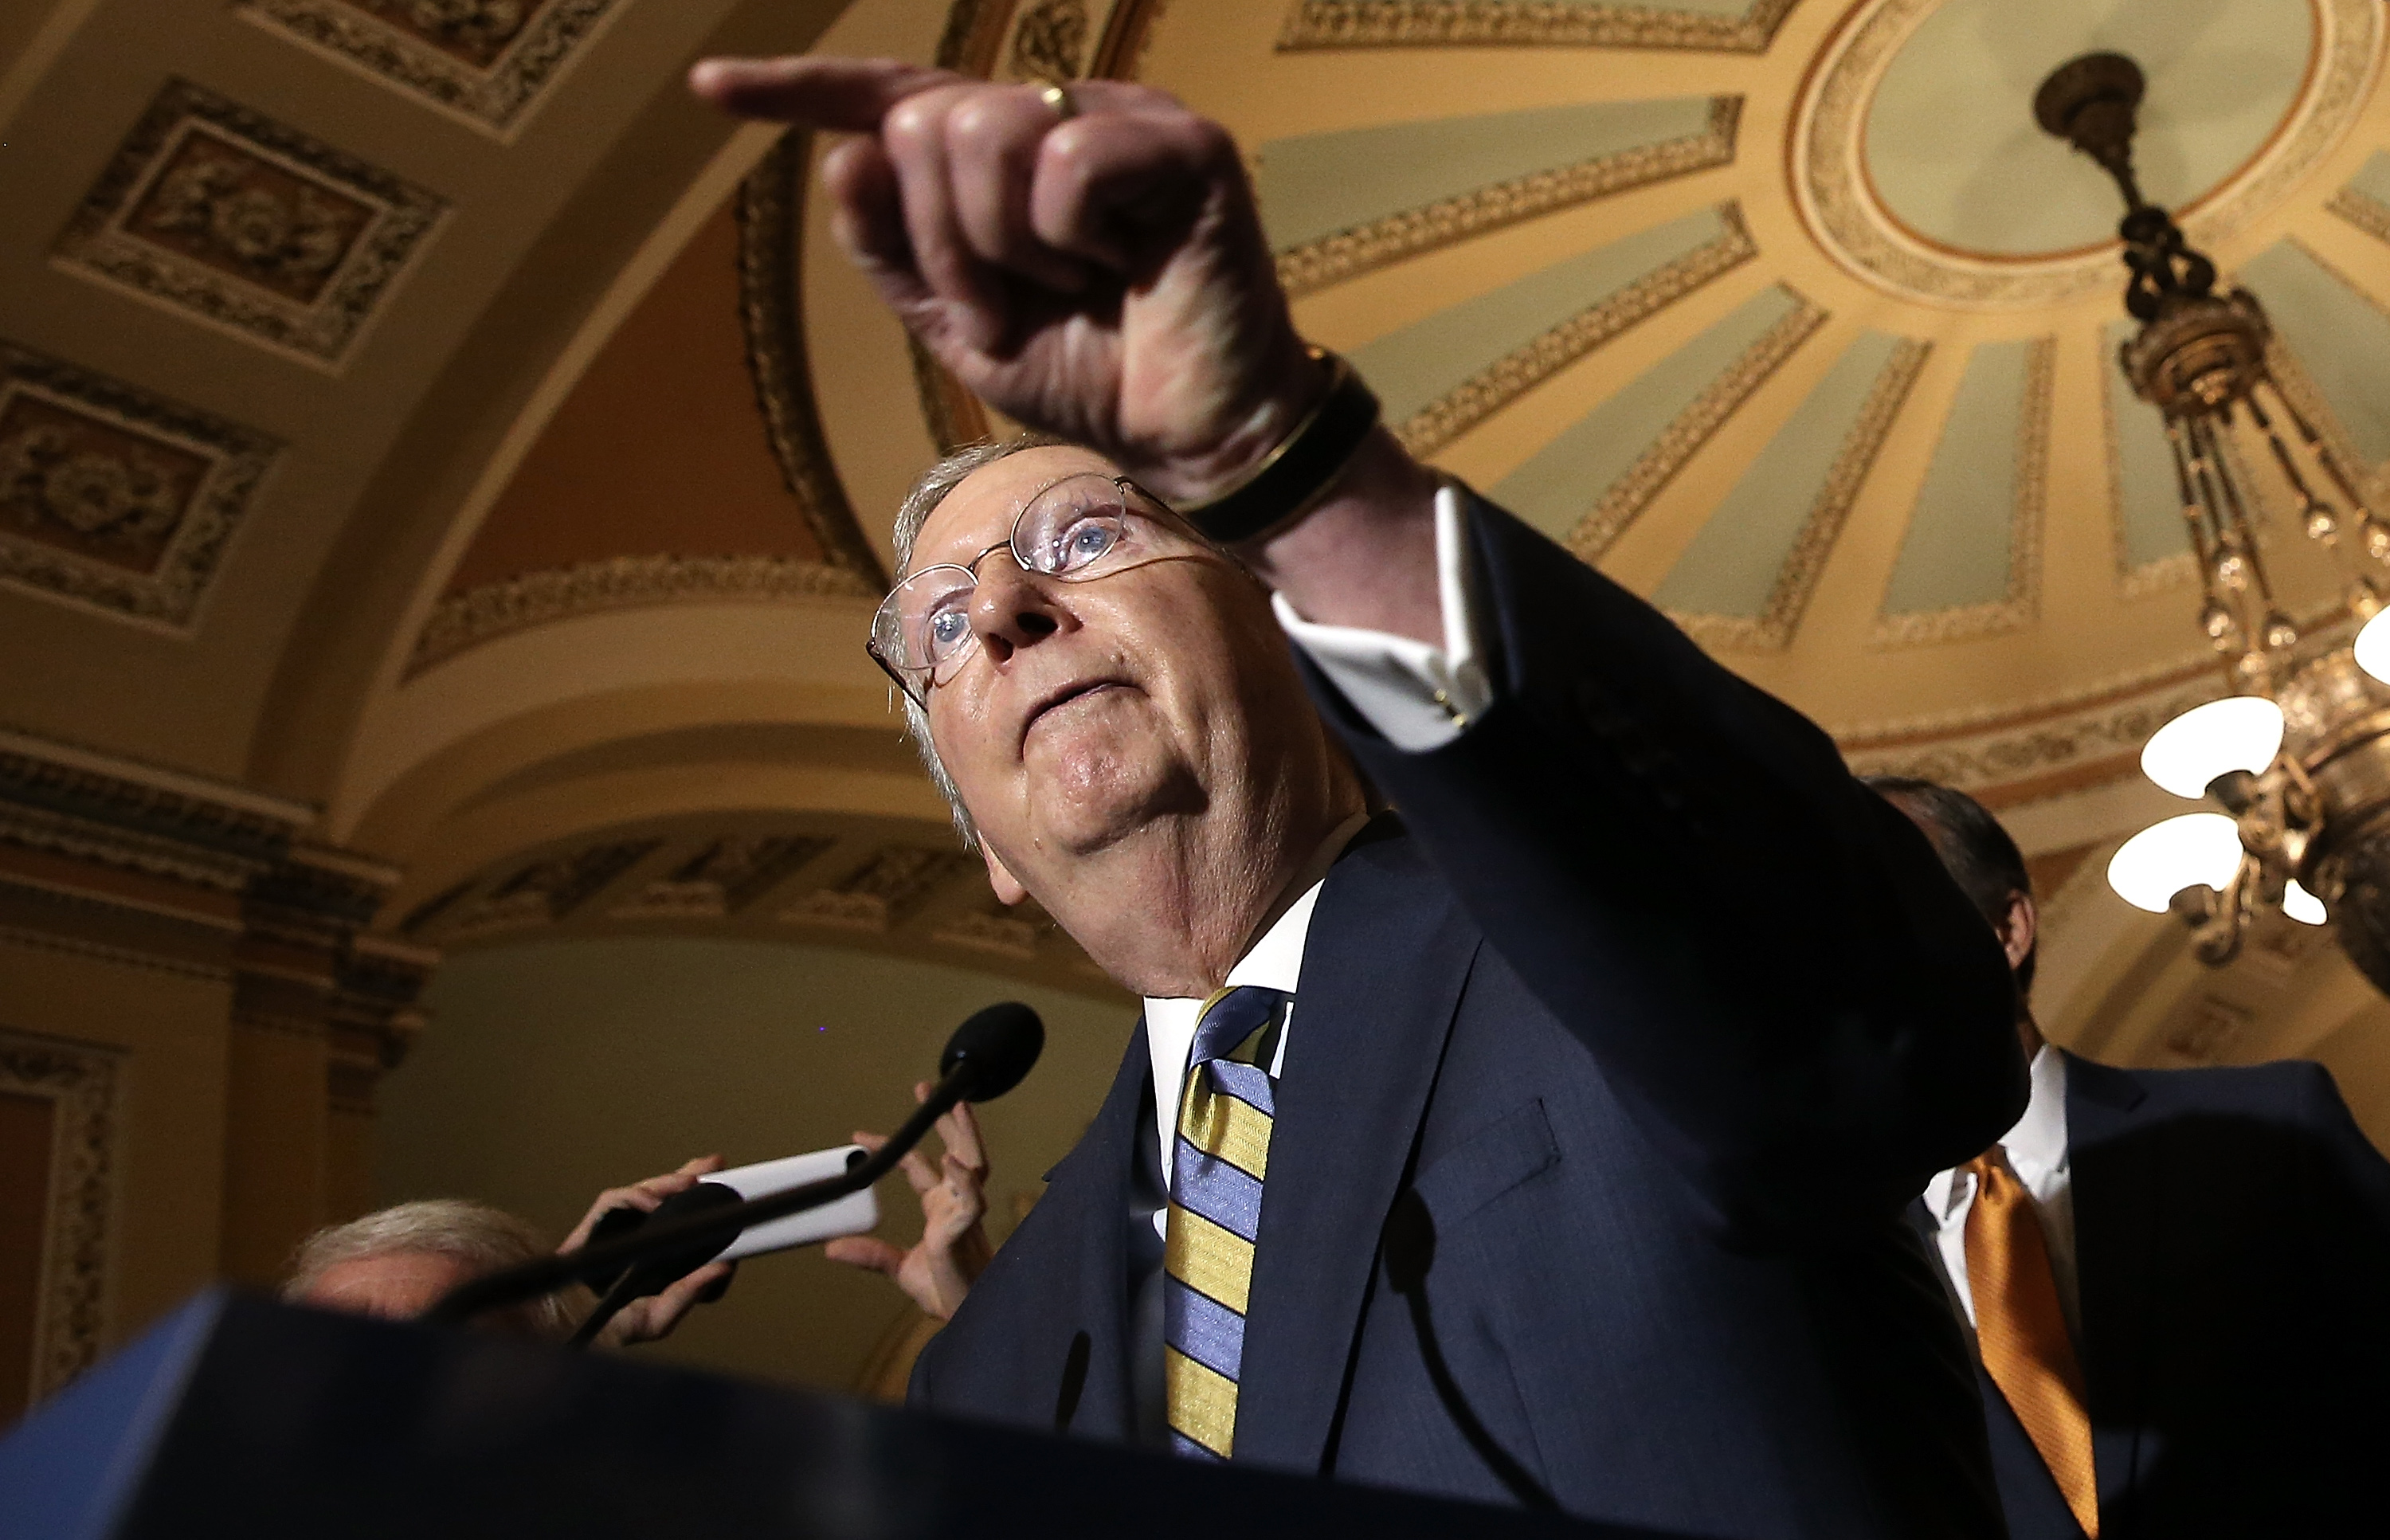 Senate Majority Leader Mitch McConnell (R-KY) answers questions at the U.S. Capitol June 2, 2015 in Washington, D.C.